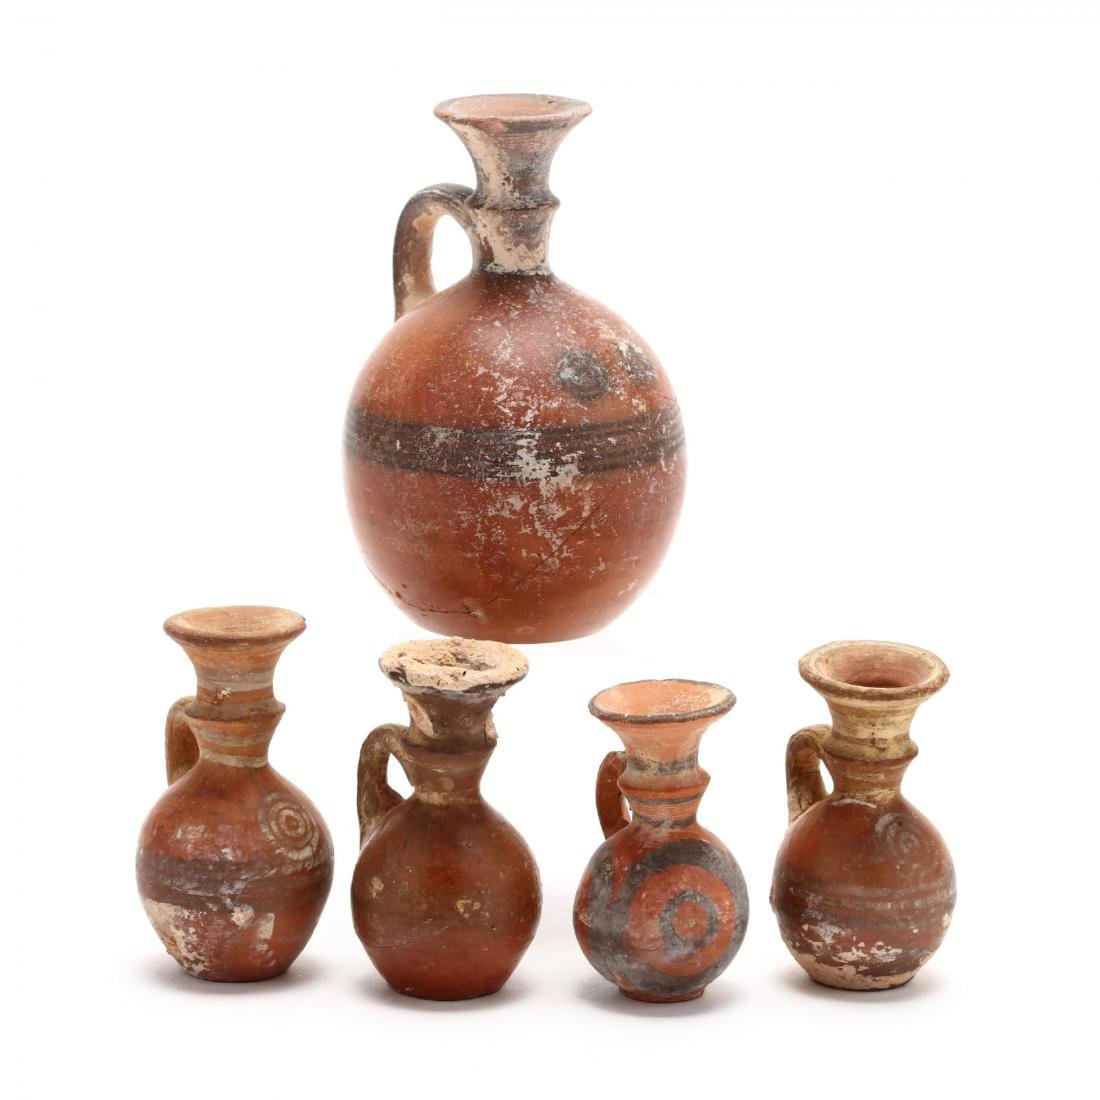 Five Late Bronze Age Red Ware Juglets